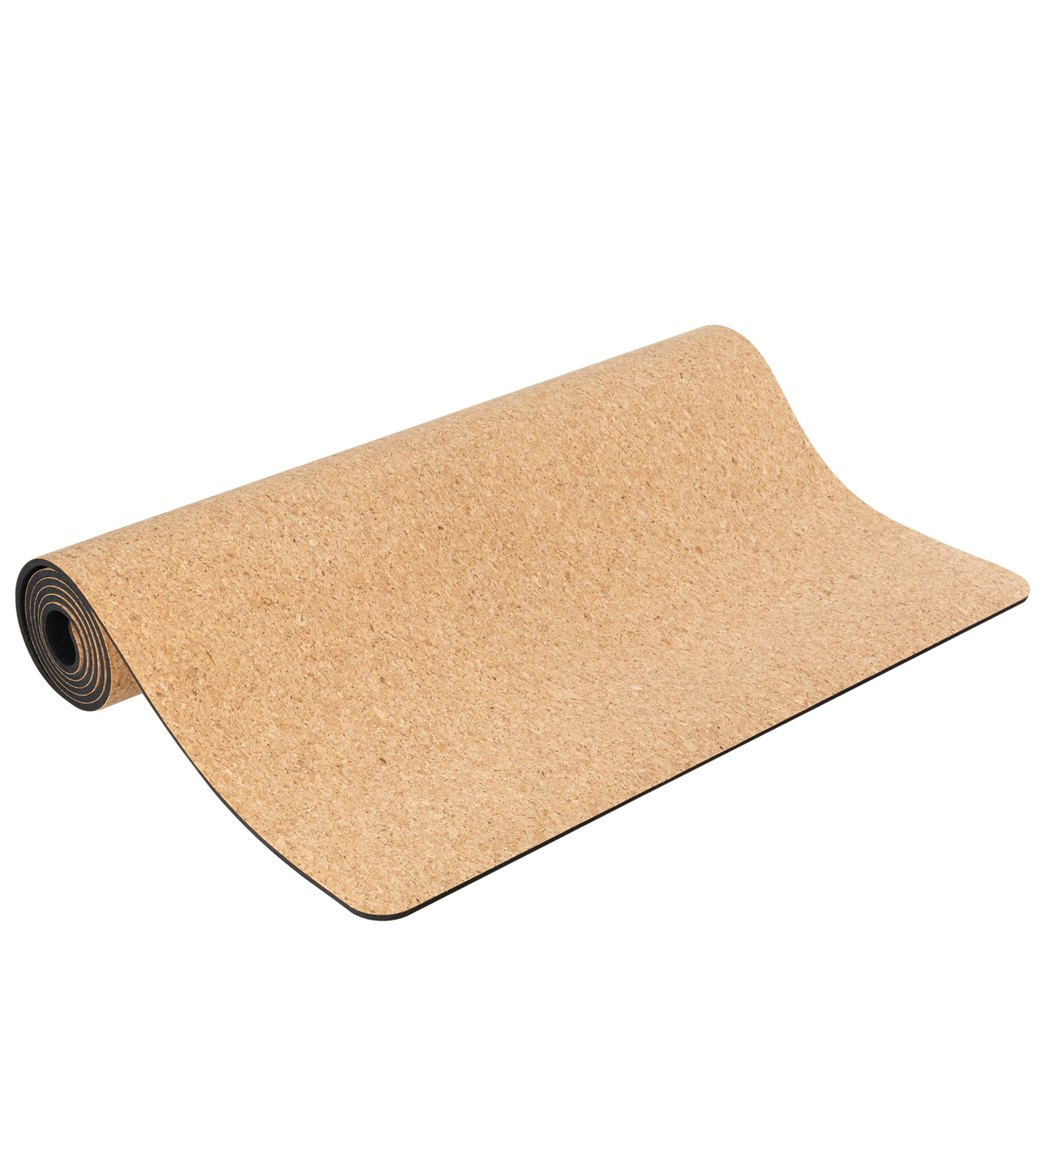 Everyday Yoga Cork Yoga Mat 68 Inch 5mm At Swimoutlet Com